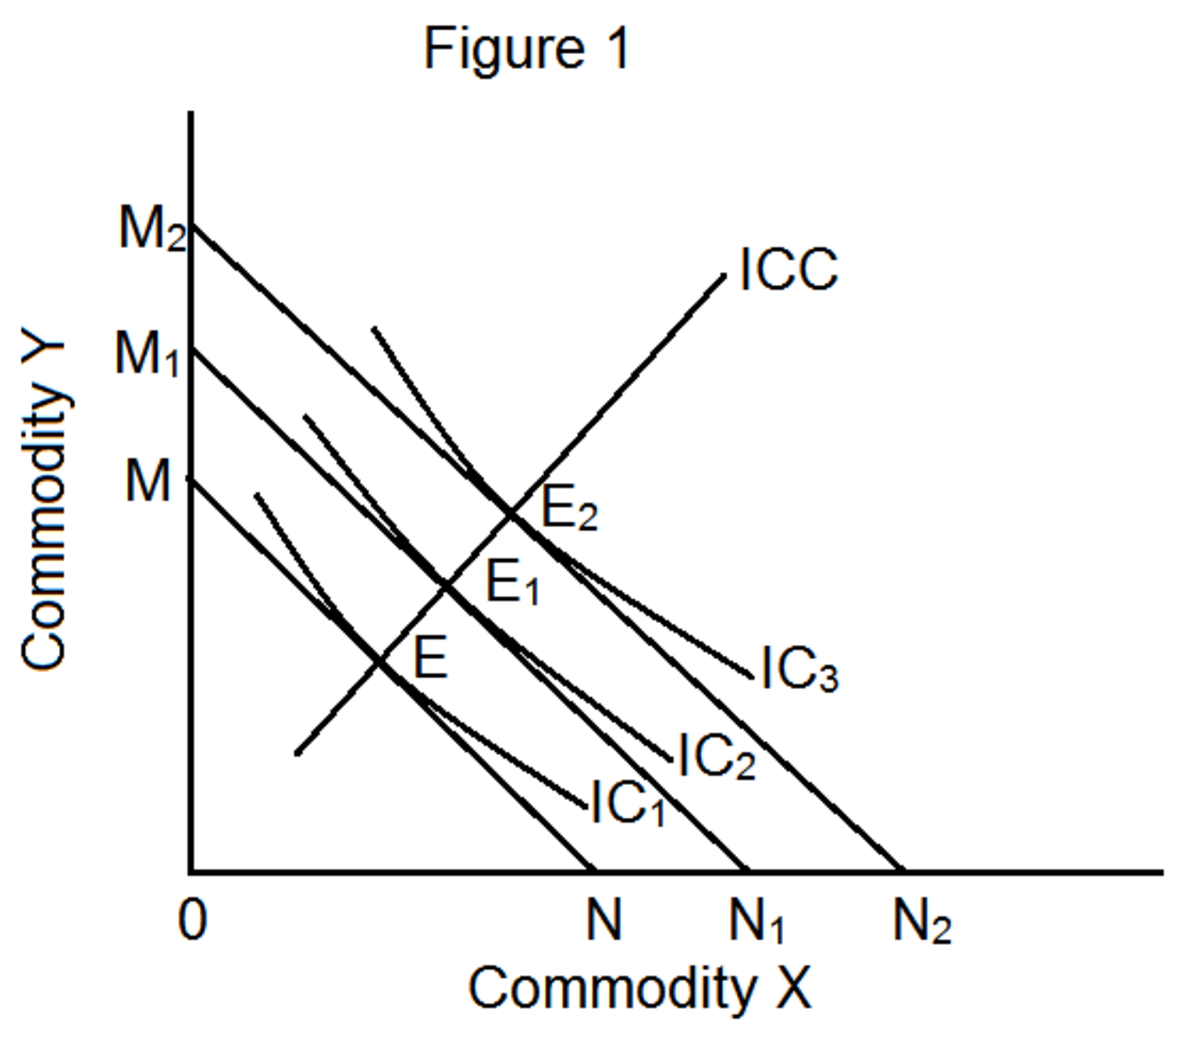 How Do Income Effect, Substitution Effect and Price Effect Influence Consumer's Equilibrium?